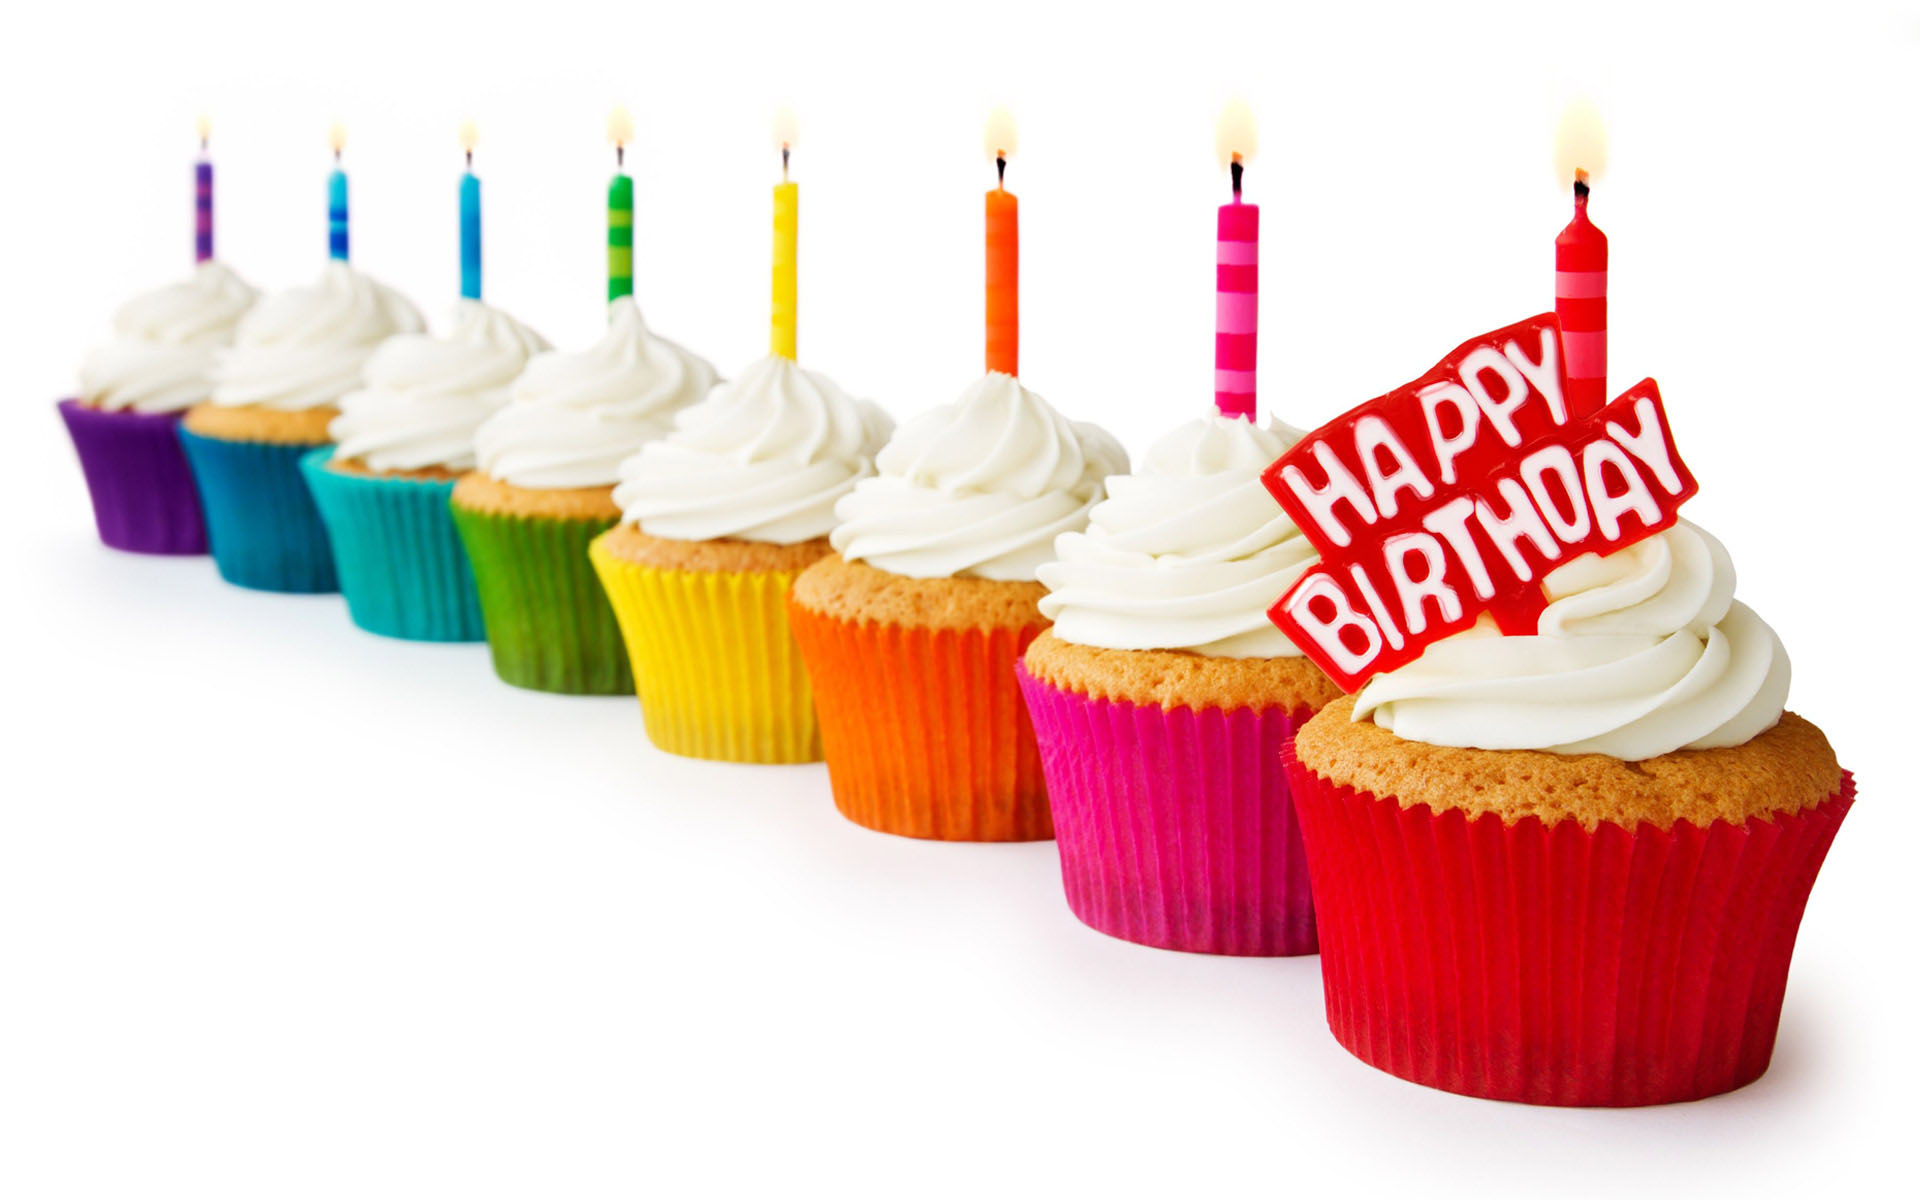 Happy Birthday Wallpapers HD Pictures One HD Wallpaper Pictures 1920x1200